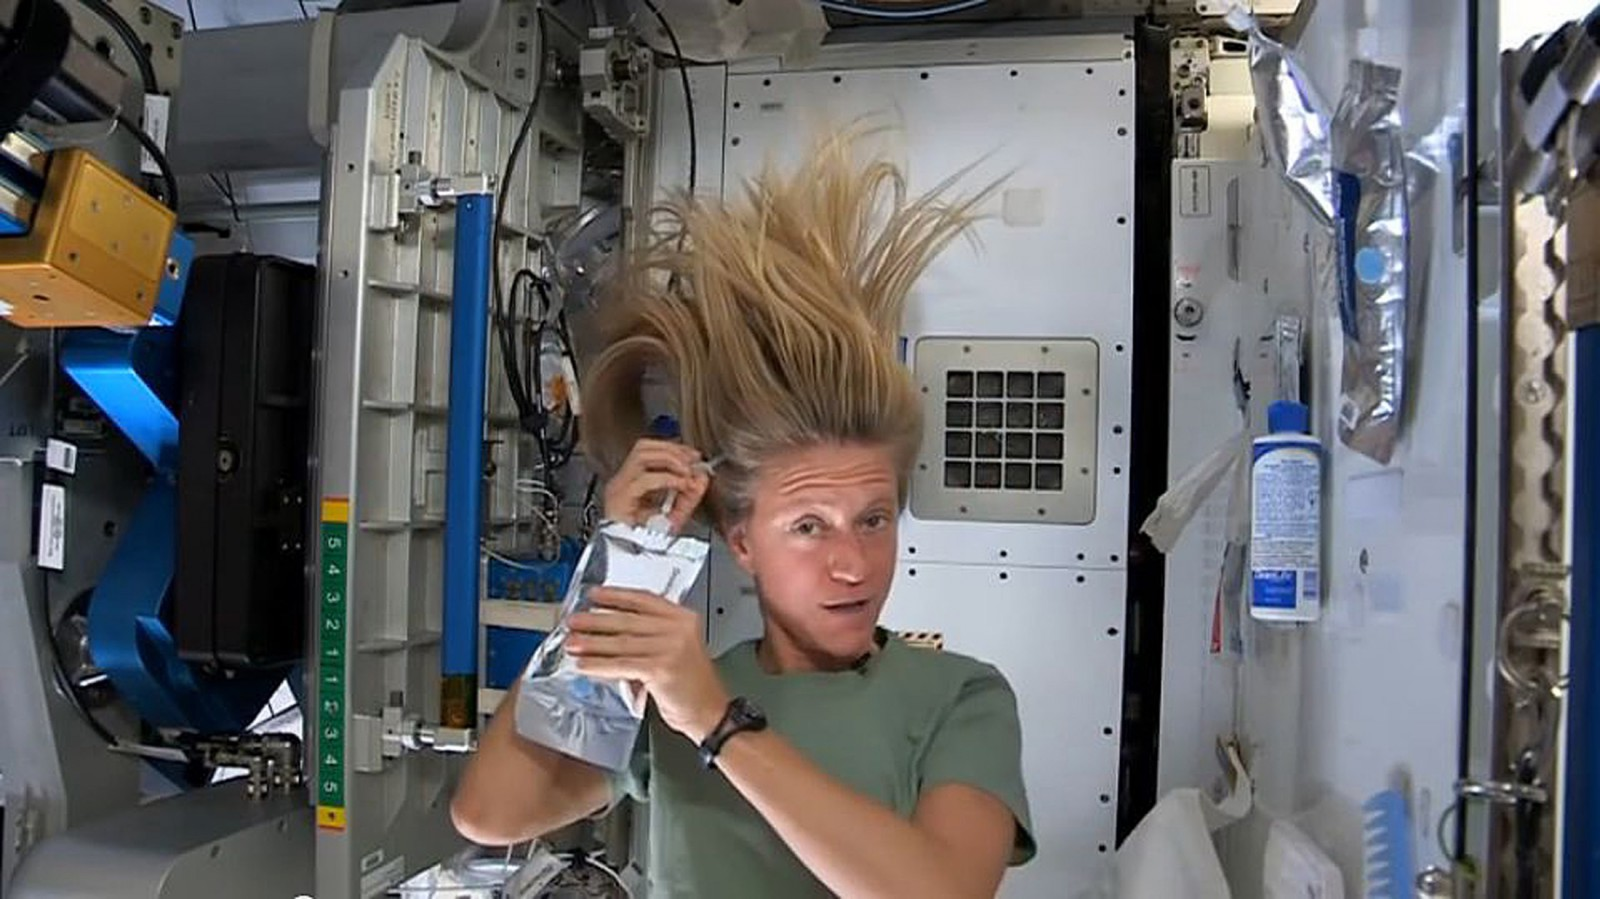 NASA astronaut Karen Nyberg, currently serving as part of Expedition 36 aboard the International Space Station, demonstrates how she washes her hair in zero gravity in this still image taken from NASA video released July 12, 2013.   REUTERS/NASA/Handout via Reuters  (OUTER SPACE - Tags: SCIENCE TECHNOLOGY SOCIETY) ATTENTION EDITORS - THIS IMAGE WAS PROVIDED BY A THIRD PARTY. FOR EDITORIAL USE ONLY. NOT FOR SALE FOR MARKETING OR ADVERTISING CAMPAIGNS. THIS PICTURE IS DISTRIBUTED EXACTLY AS RECEIVED BY REUTERS, AS A SERVICE TO CLIENTS - RTX11OC0